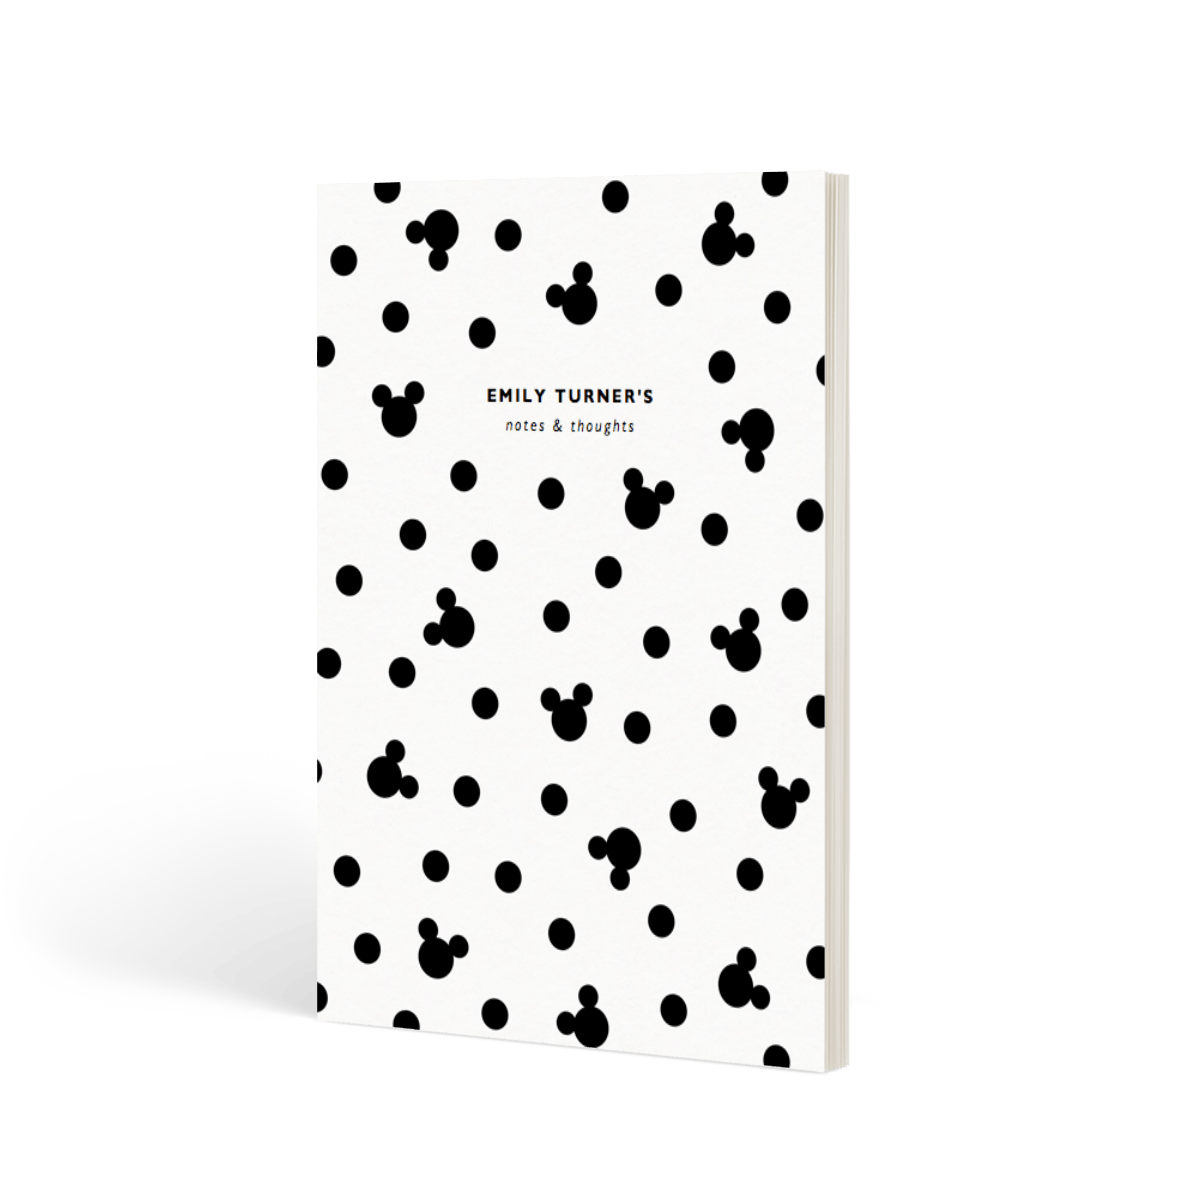 Https%3a%2f%2fwww.papier.com%2fproduct image%2f57323%2f6%2fpolka dot mickey mouse 13770 front 1542370613.png?ixlib=rb 1.1